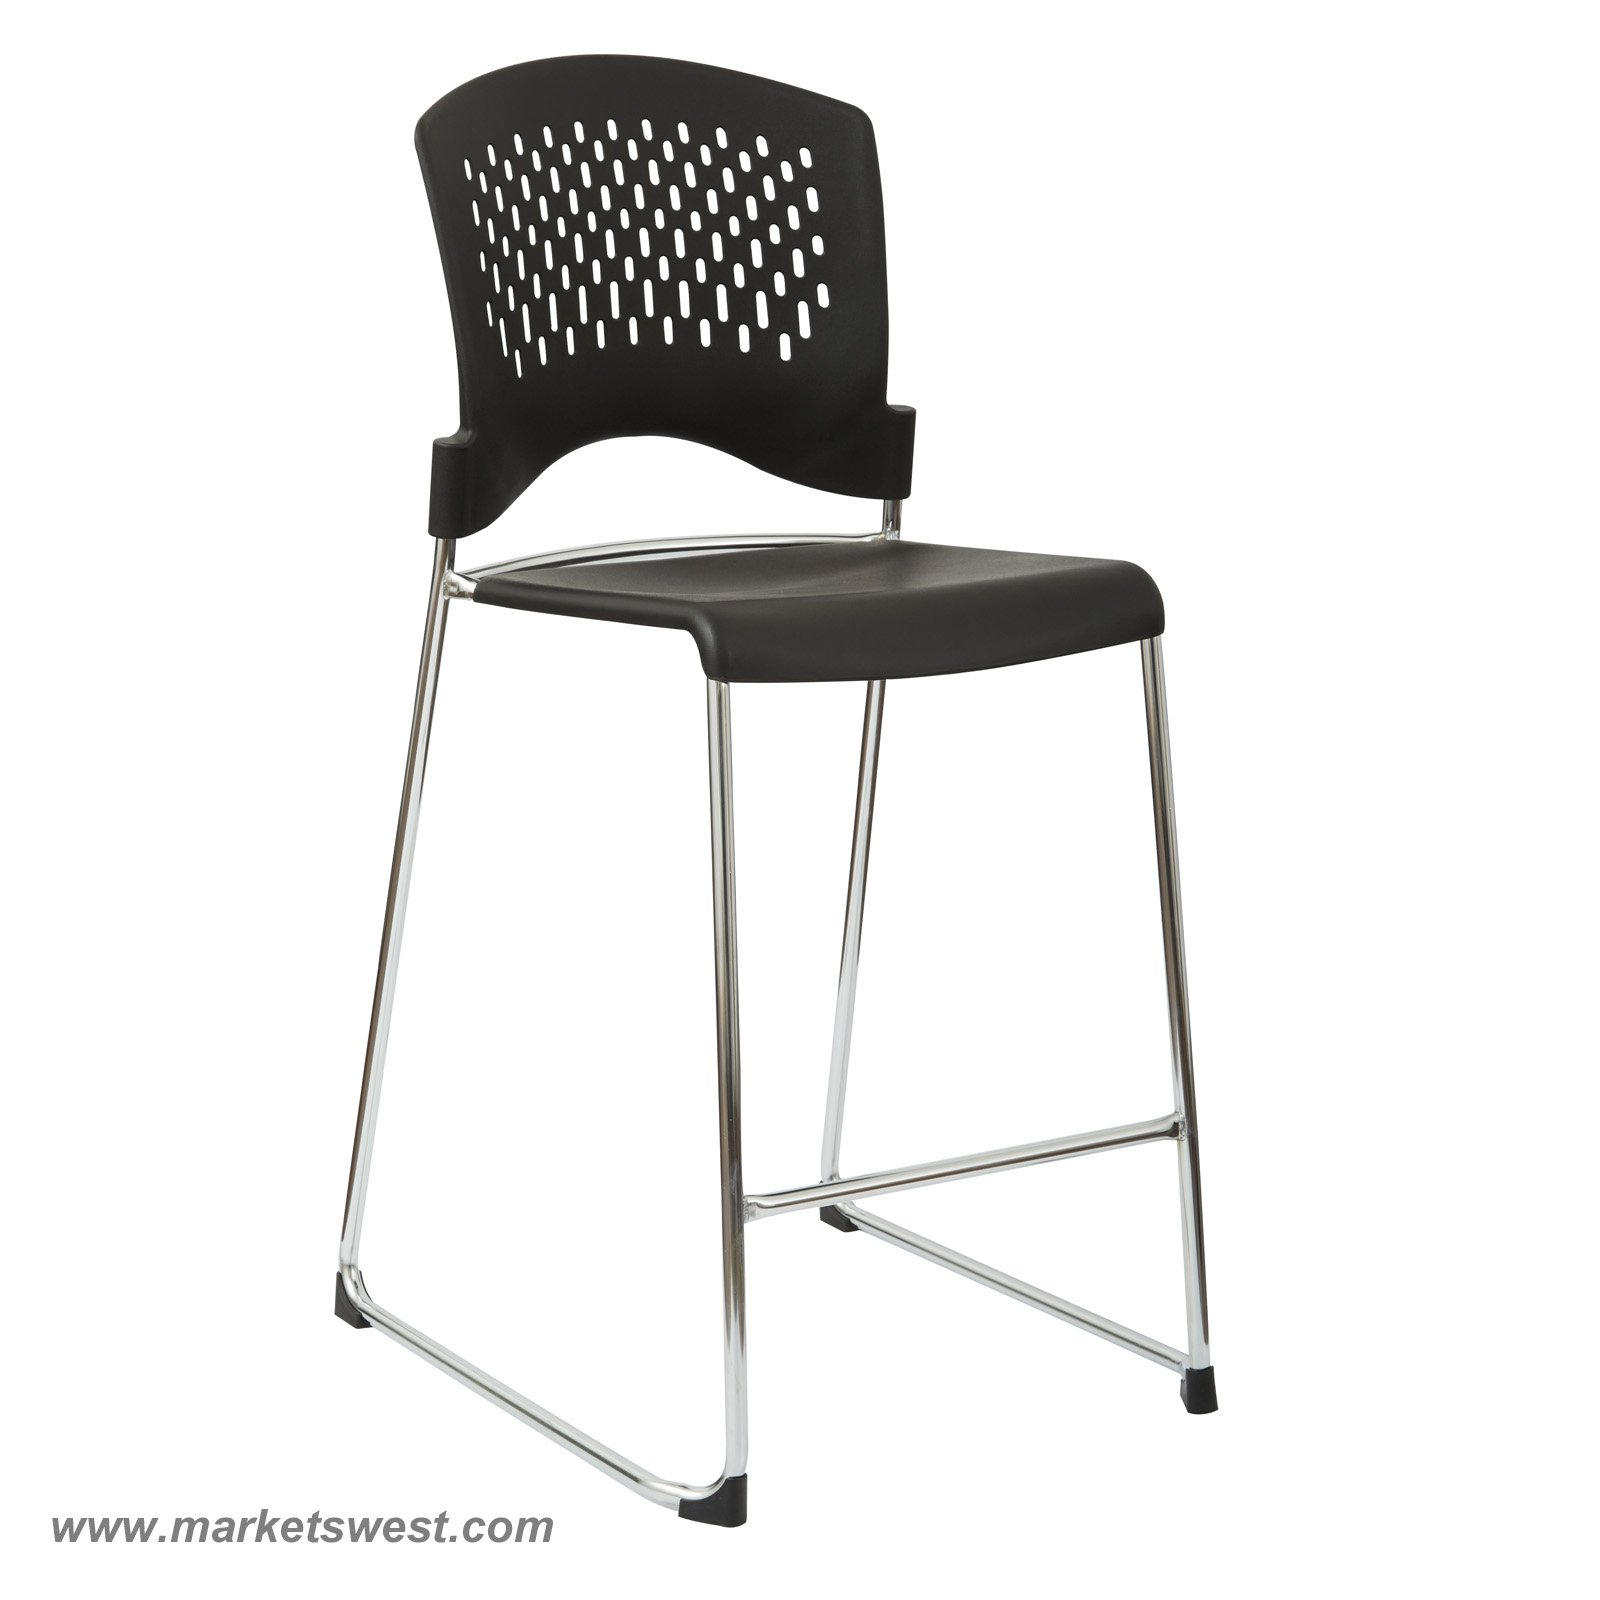 Tall Stacking Chair Stool with Plastic Seat and Back Chrome Frame